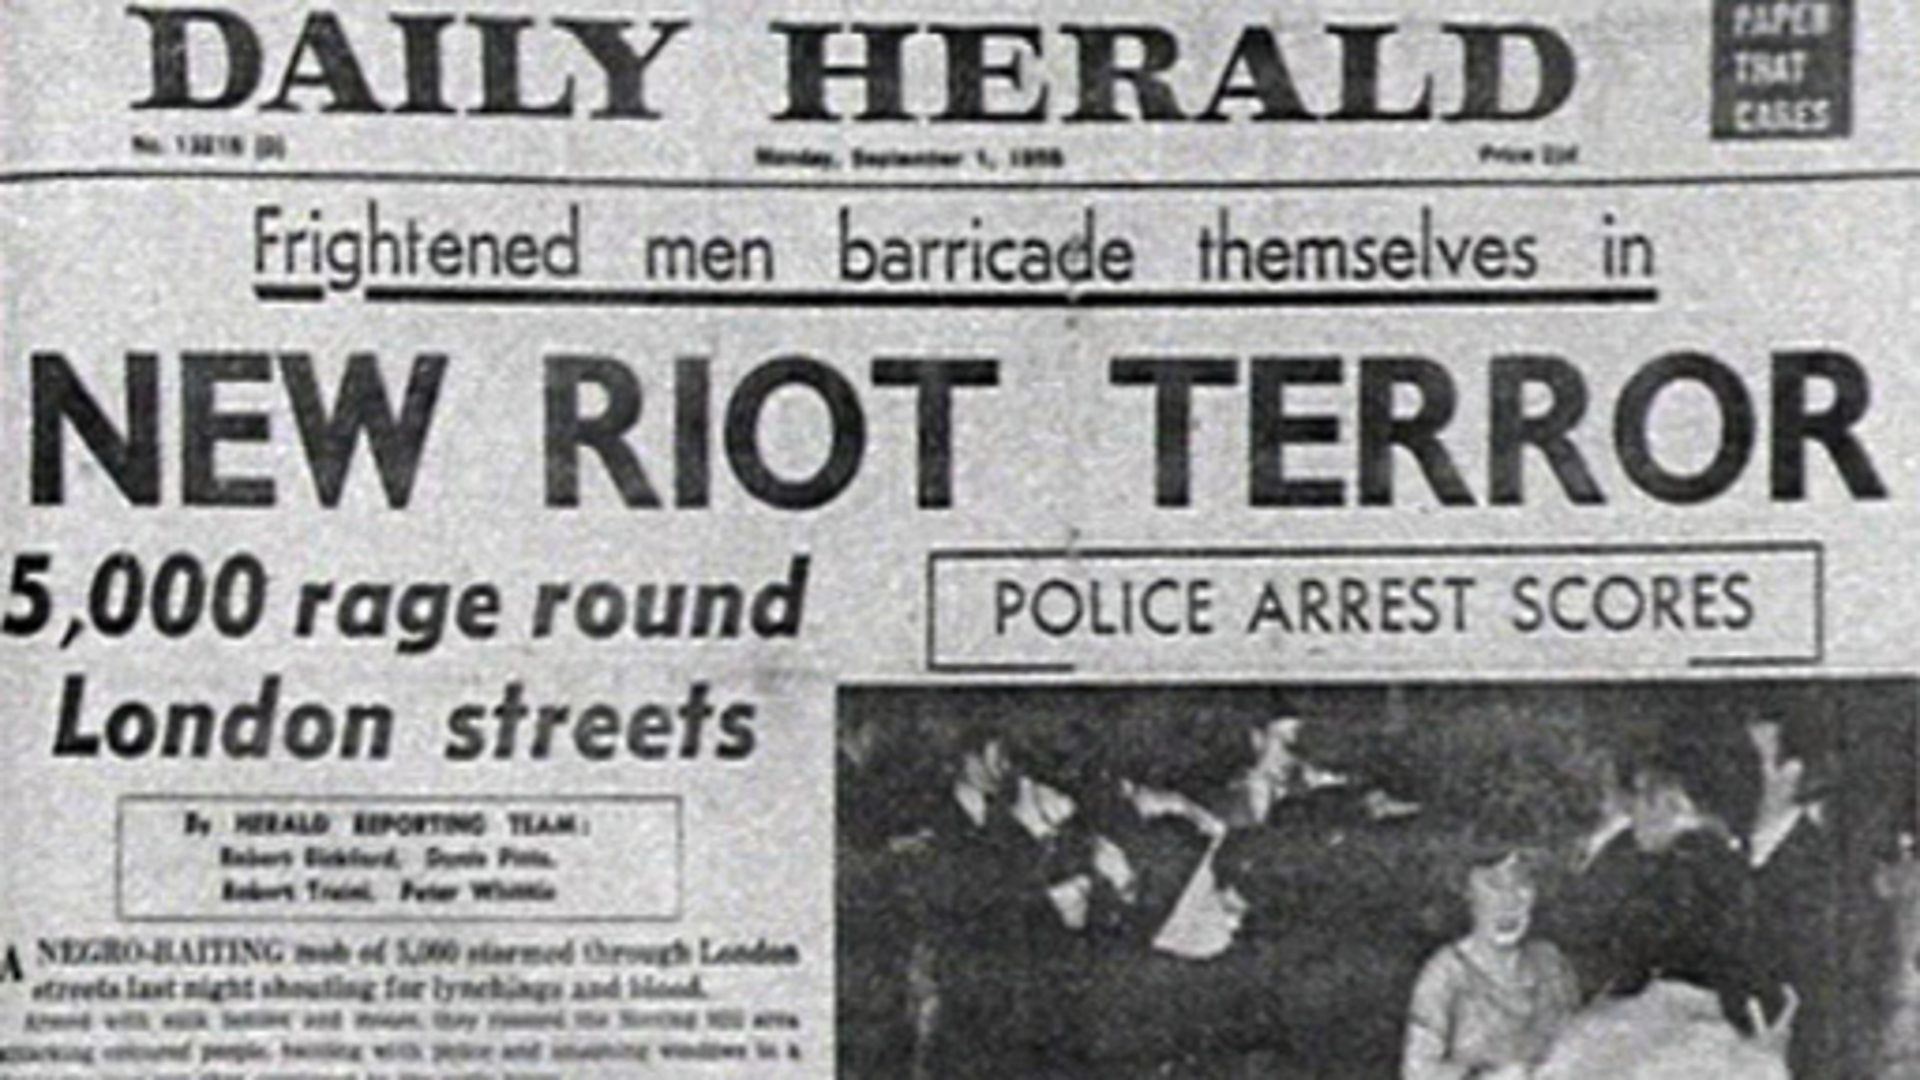 (Notting Hill race riots, via BBC)